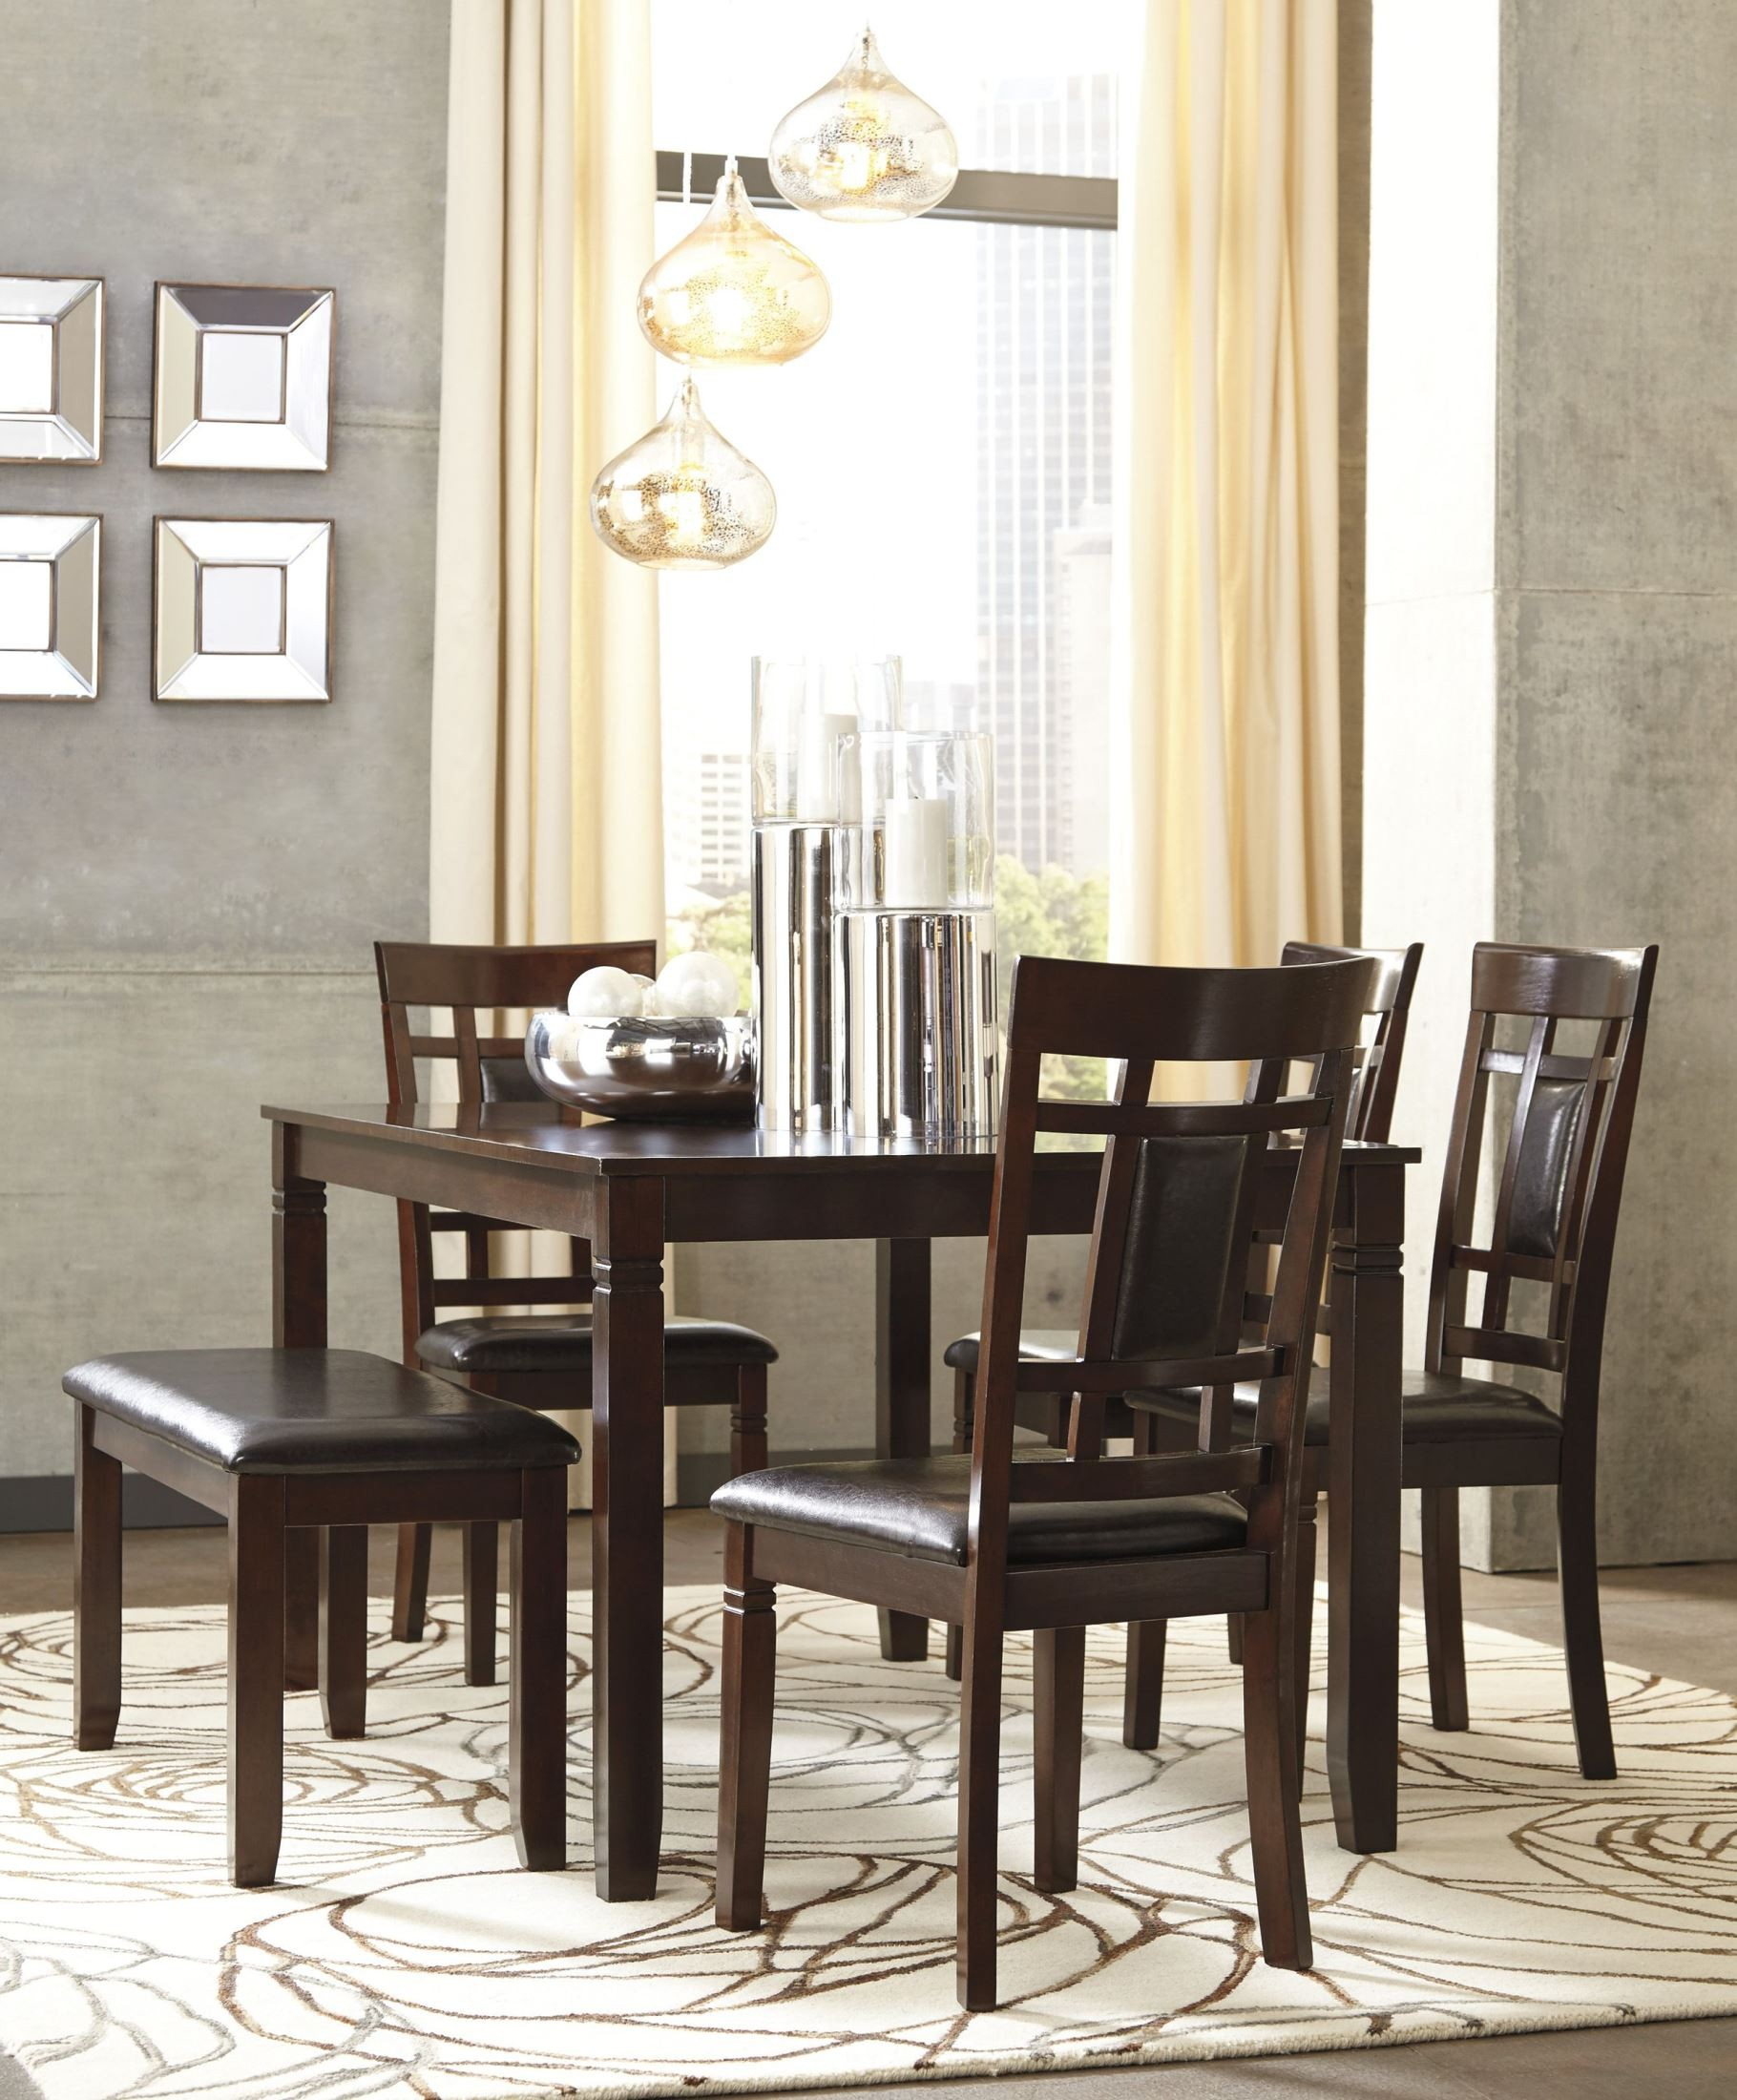 ashley dining room sets bennox brown 6 piece rectangular dining room set d384 325 ashley 3122